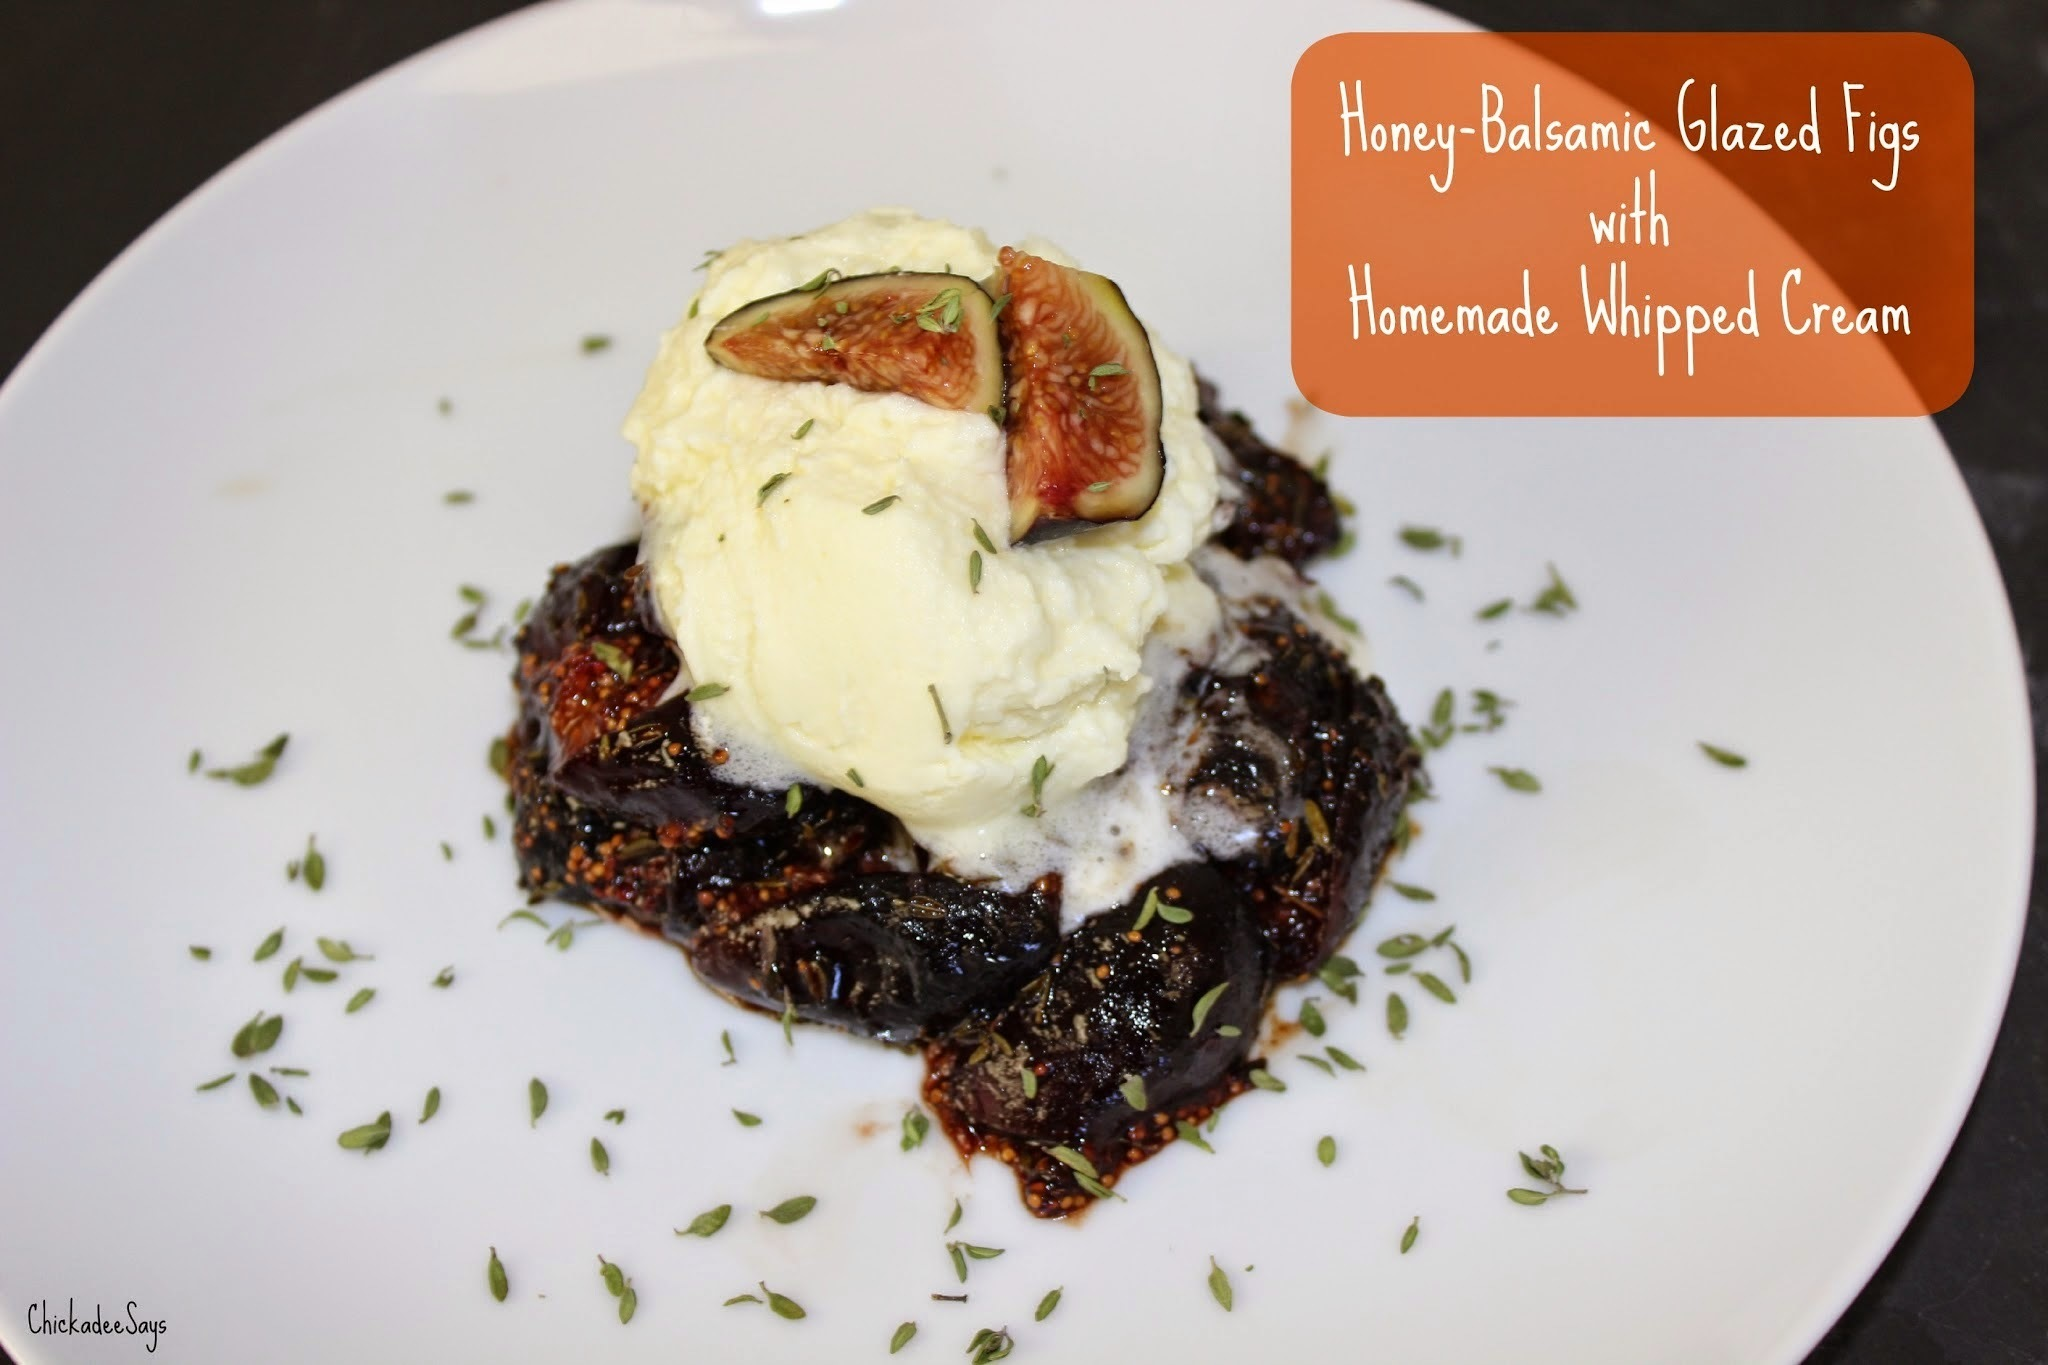 Meatless Monday: Honey-Balsamic Glazed Figs & Homemade Whipped Cream